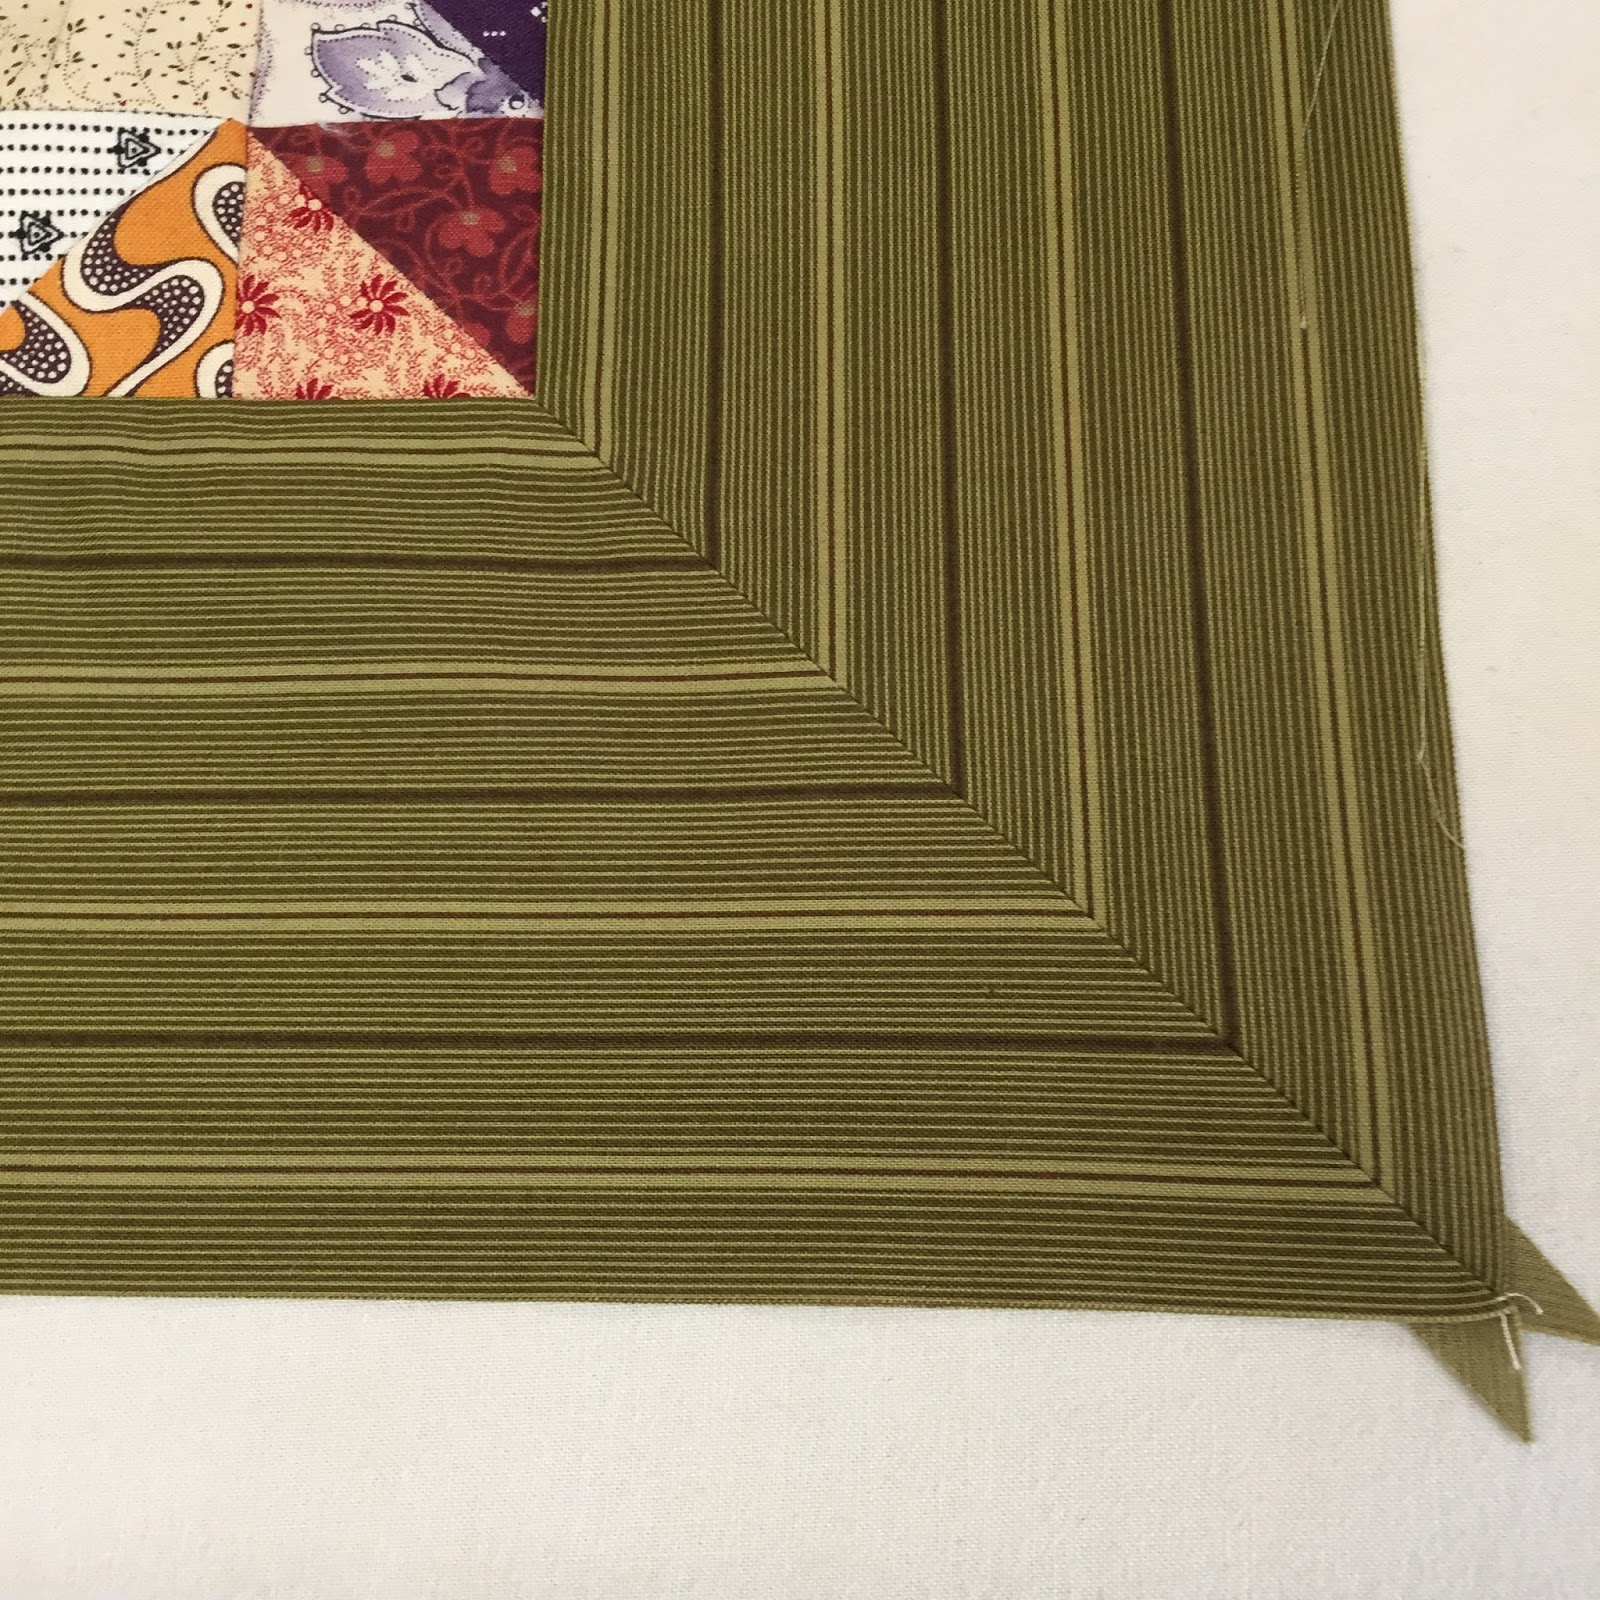 how to add borders to a quilt